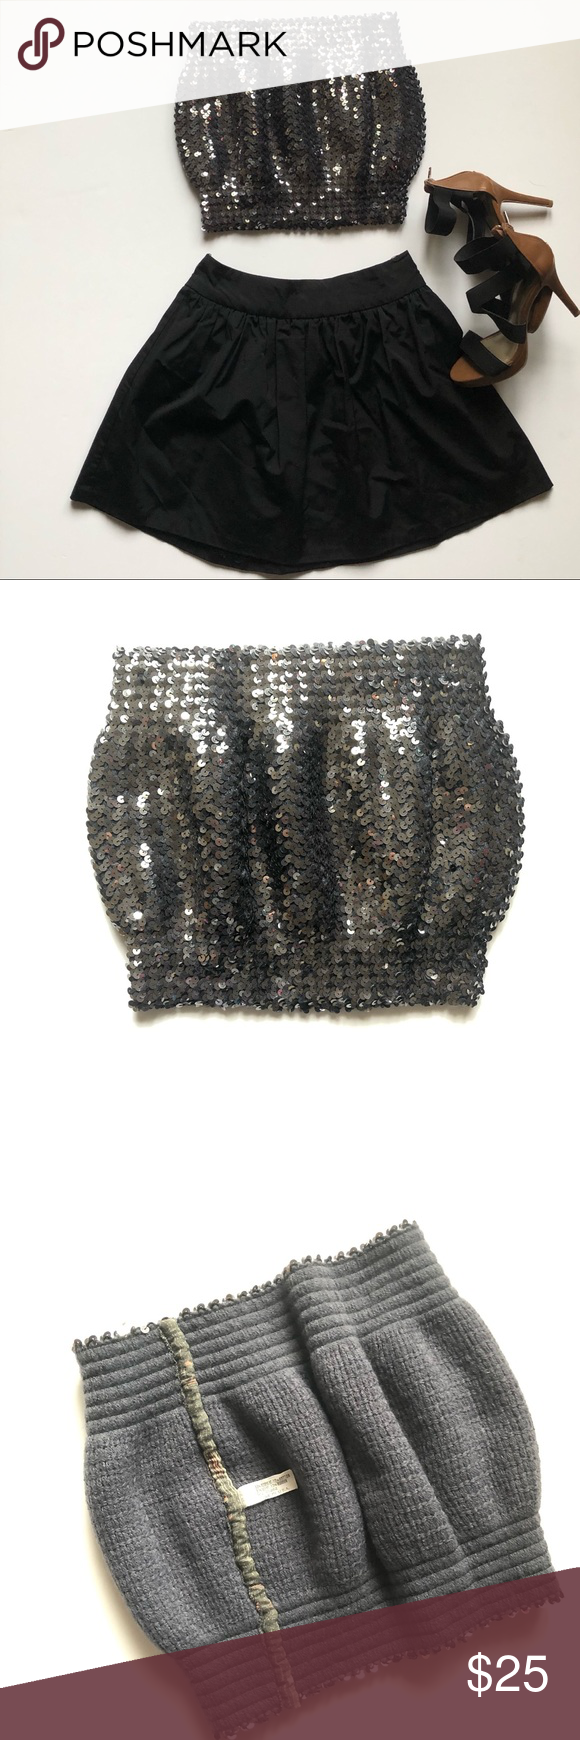 851f91d67e Silver Grey Sequins Tube Top Stretchy M Beautiful 😍 Sequins Top Perfect  for New year! Stretchy and comfortable fabric lining 50% acrylic